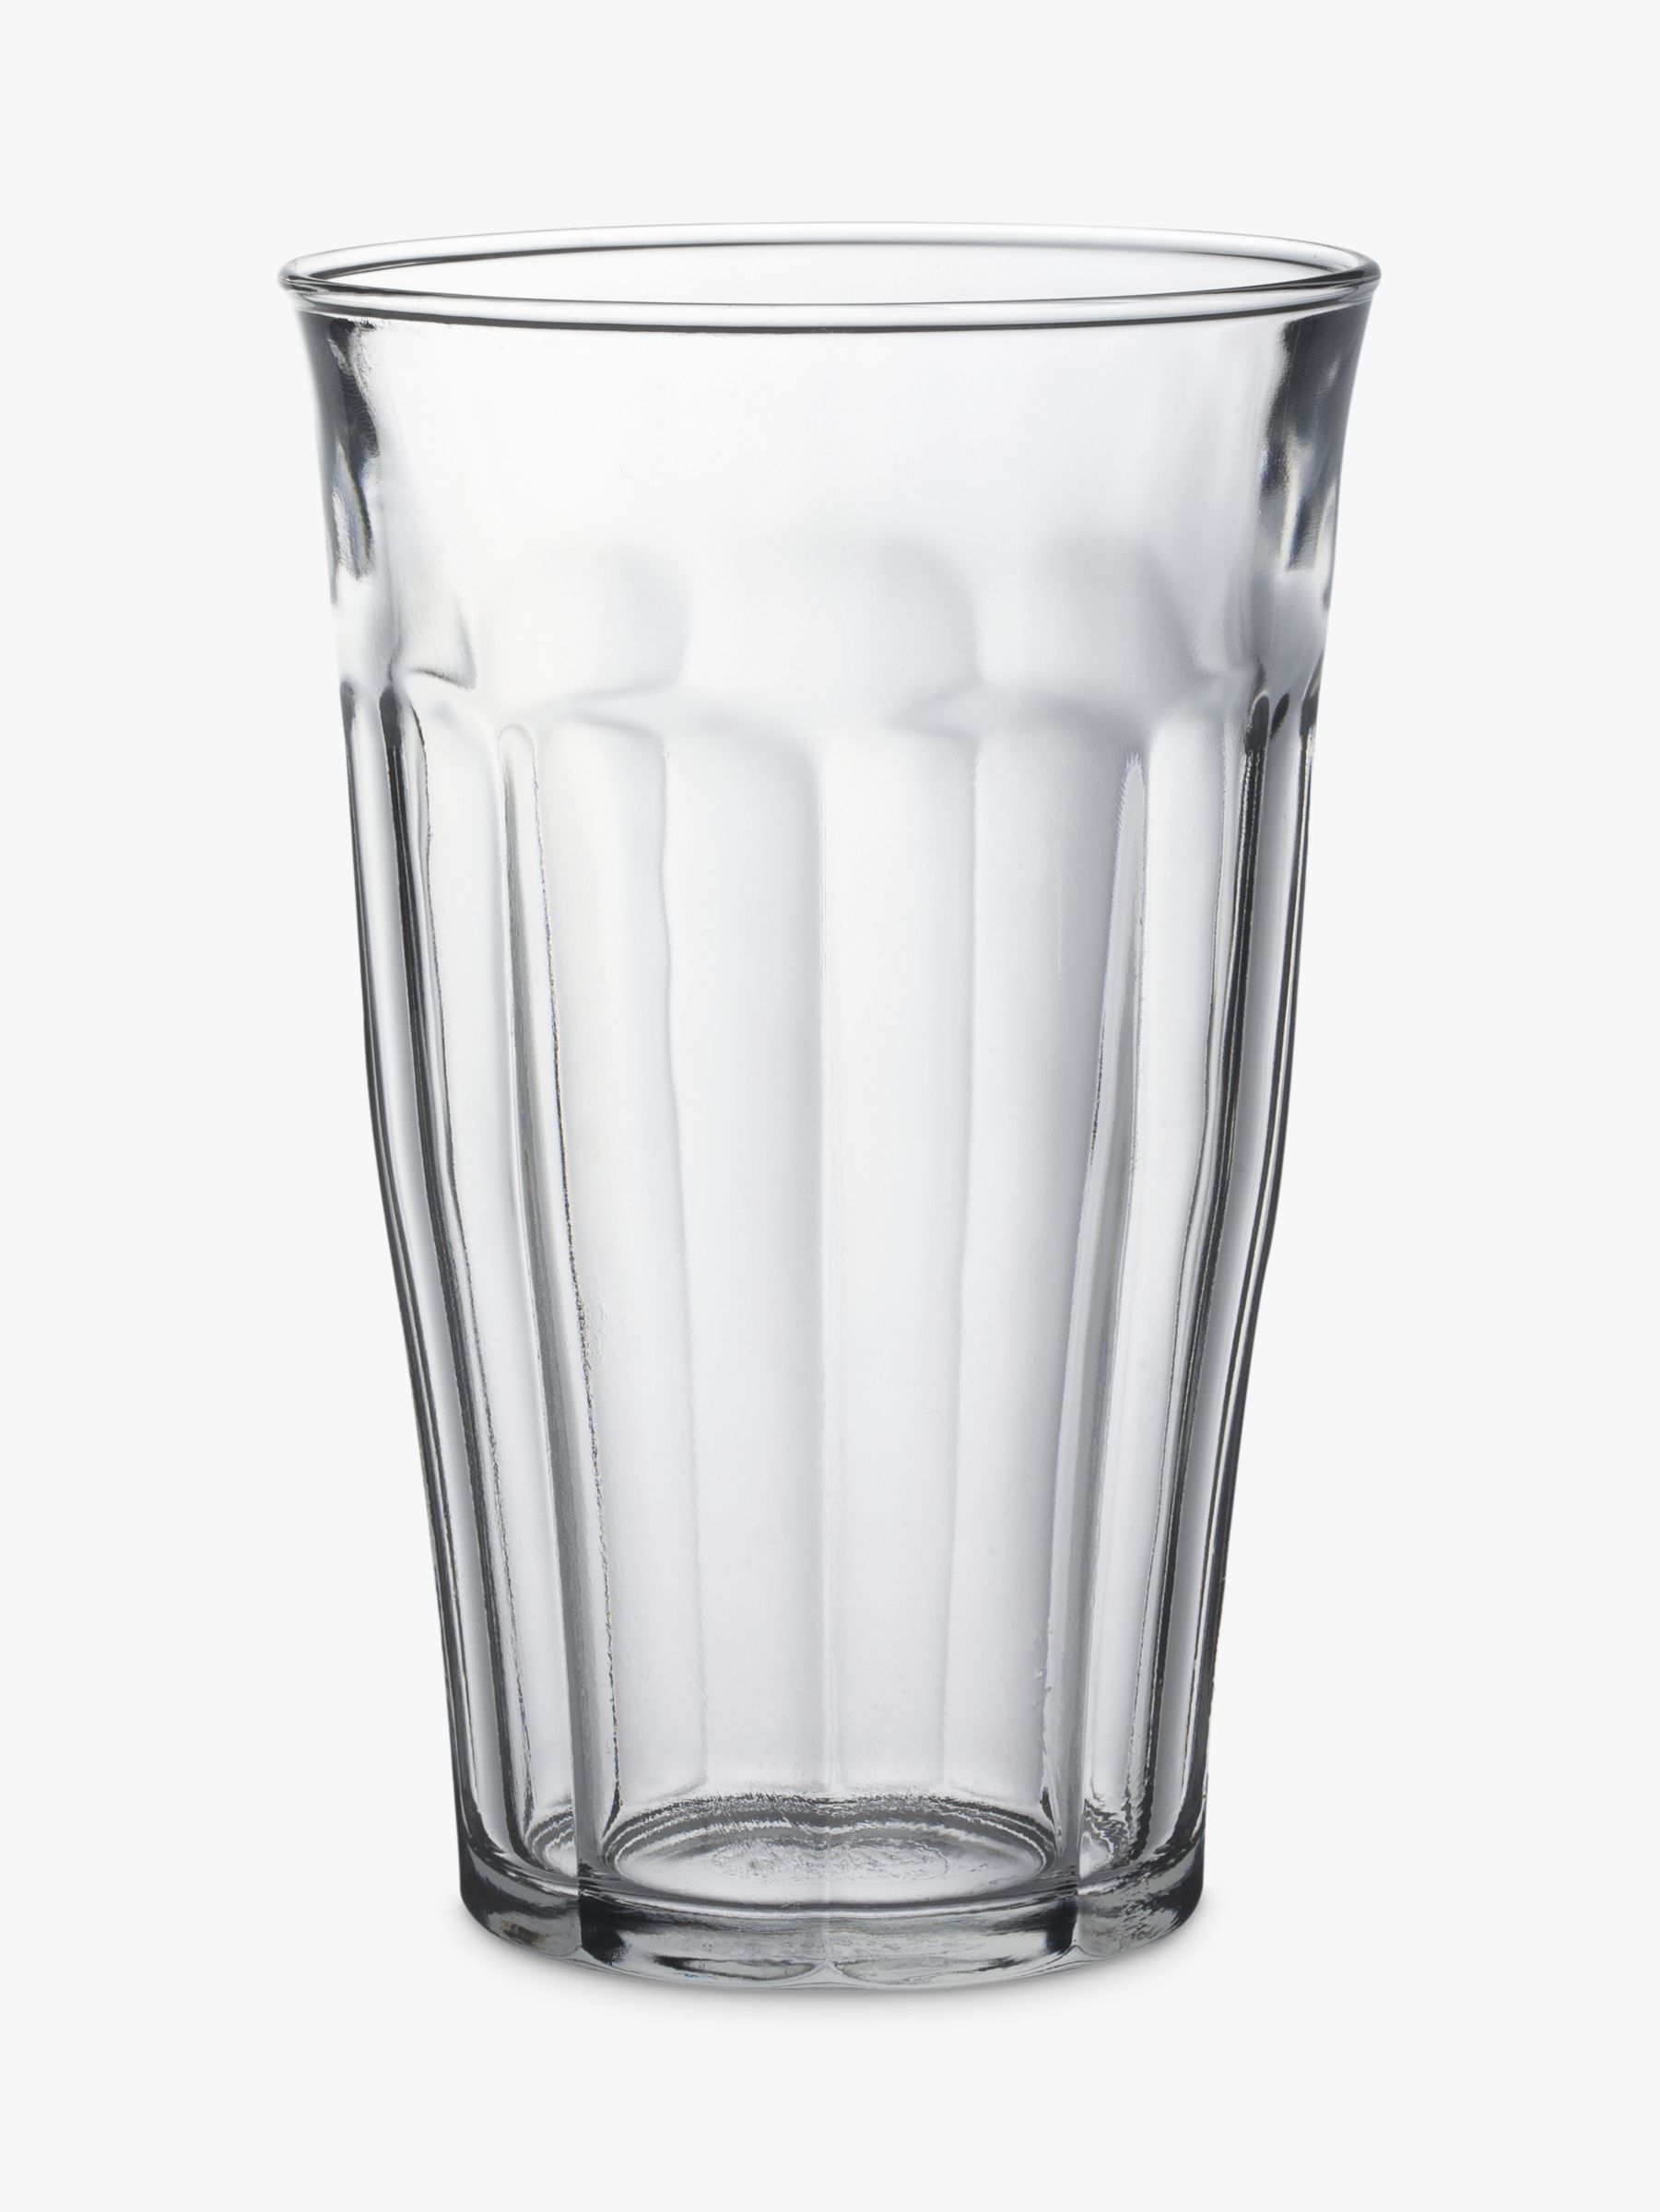 Duralex Duralex Picardie Tumblers, Set of 4, Clear, 500ml